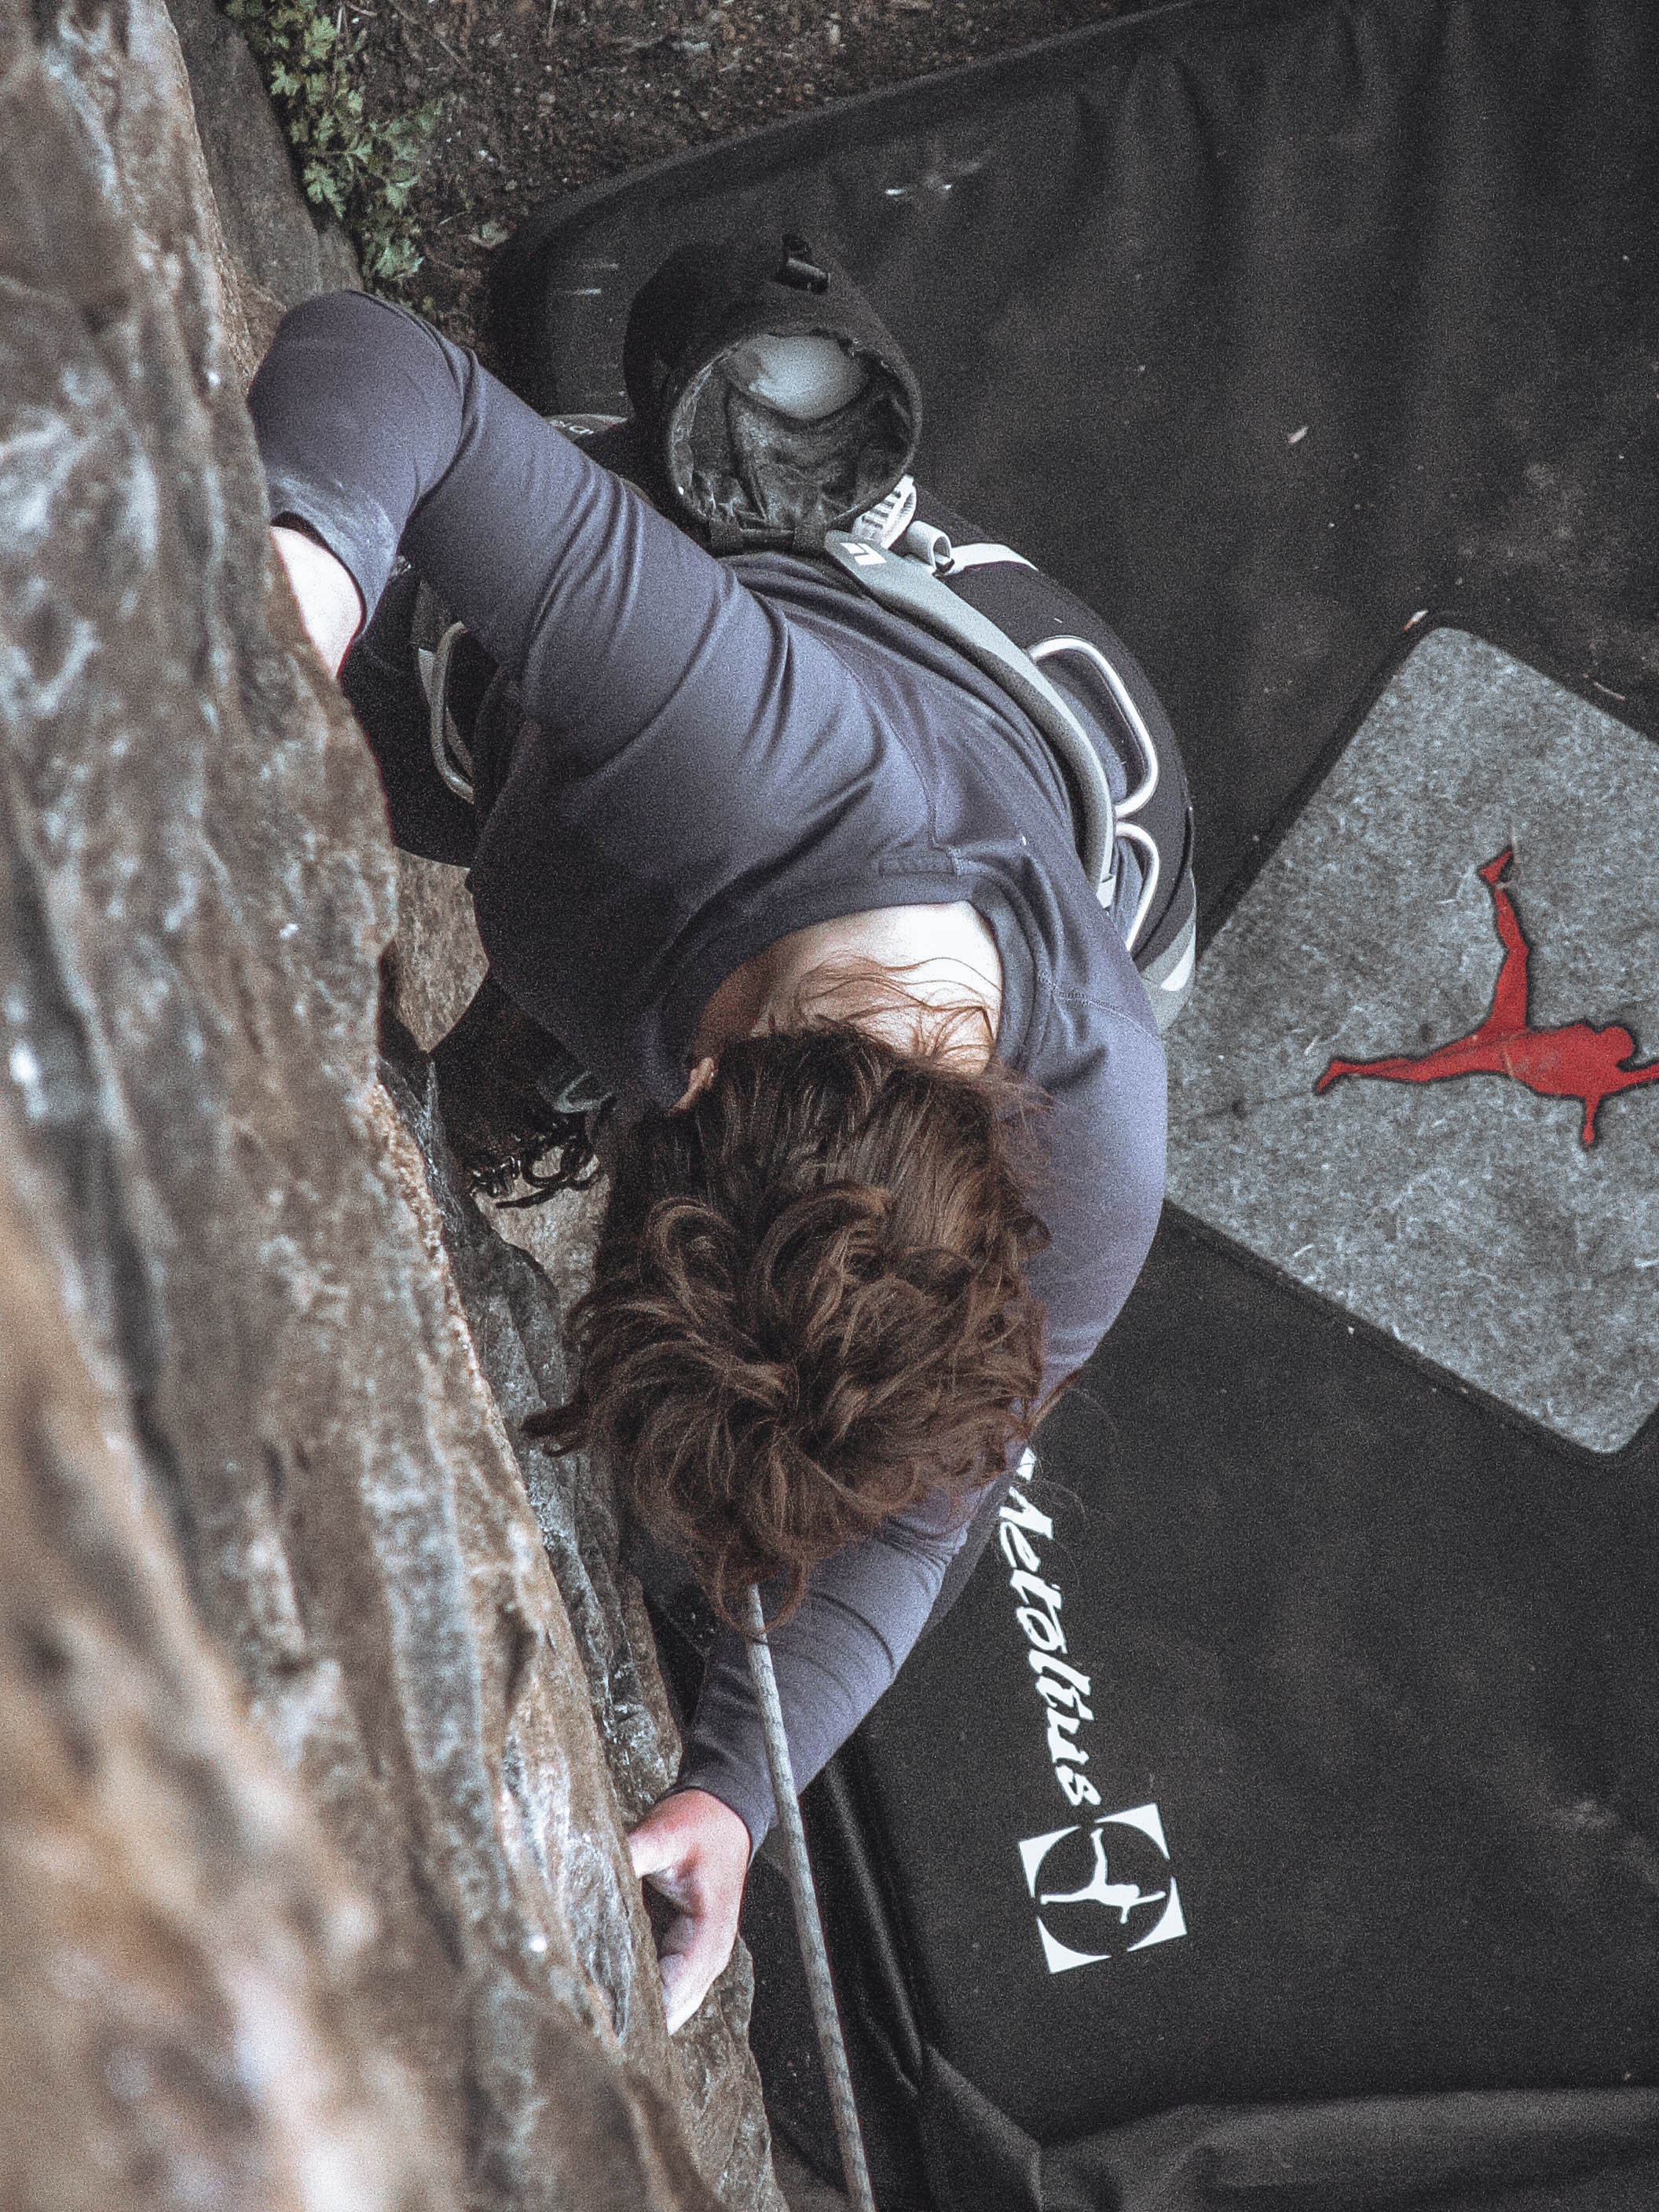 Rock Climbing- About me